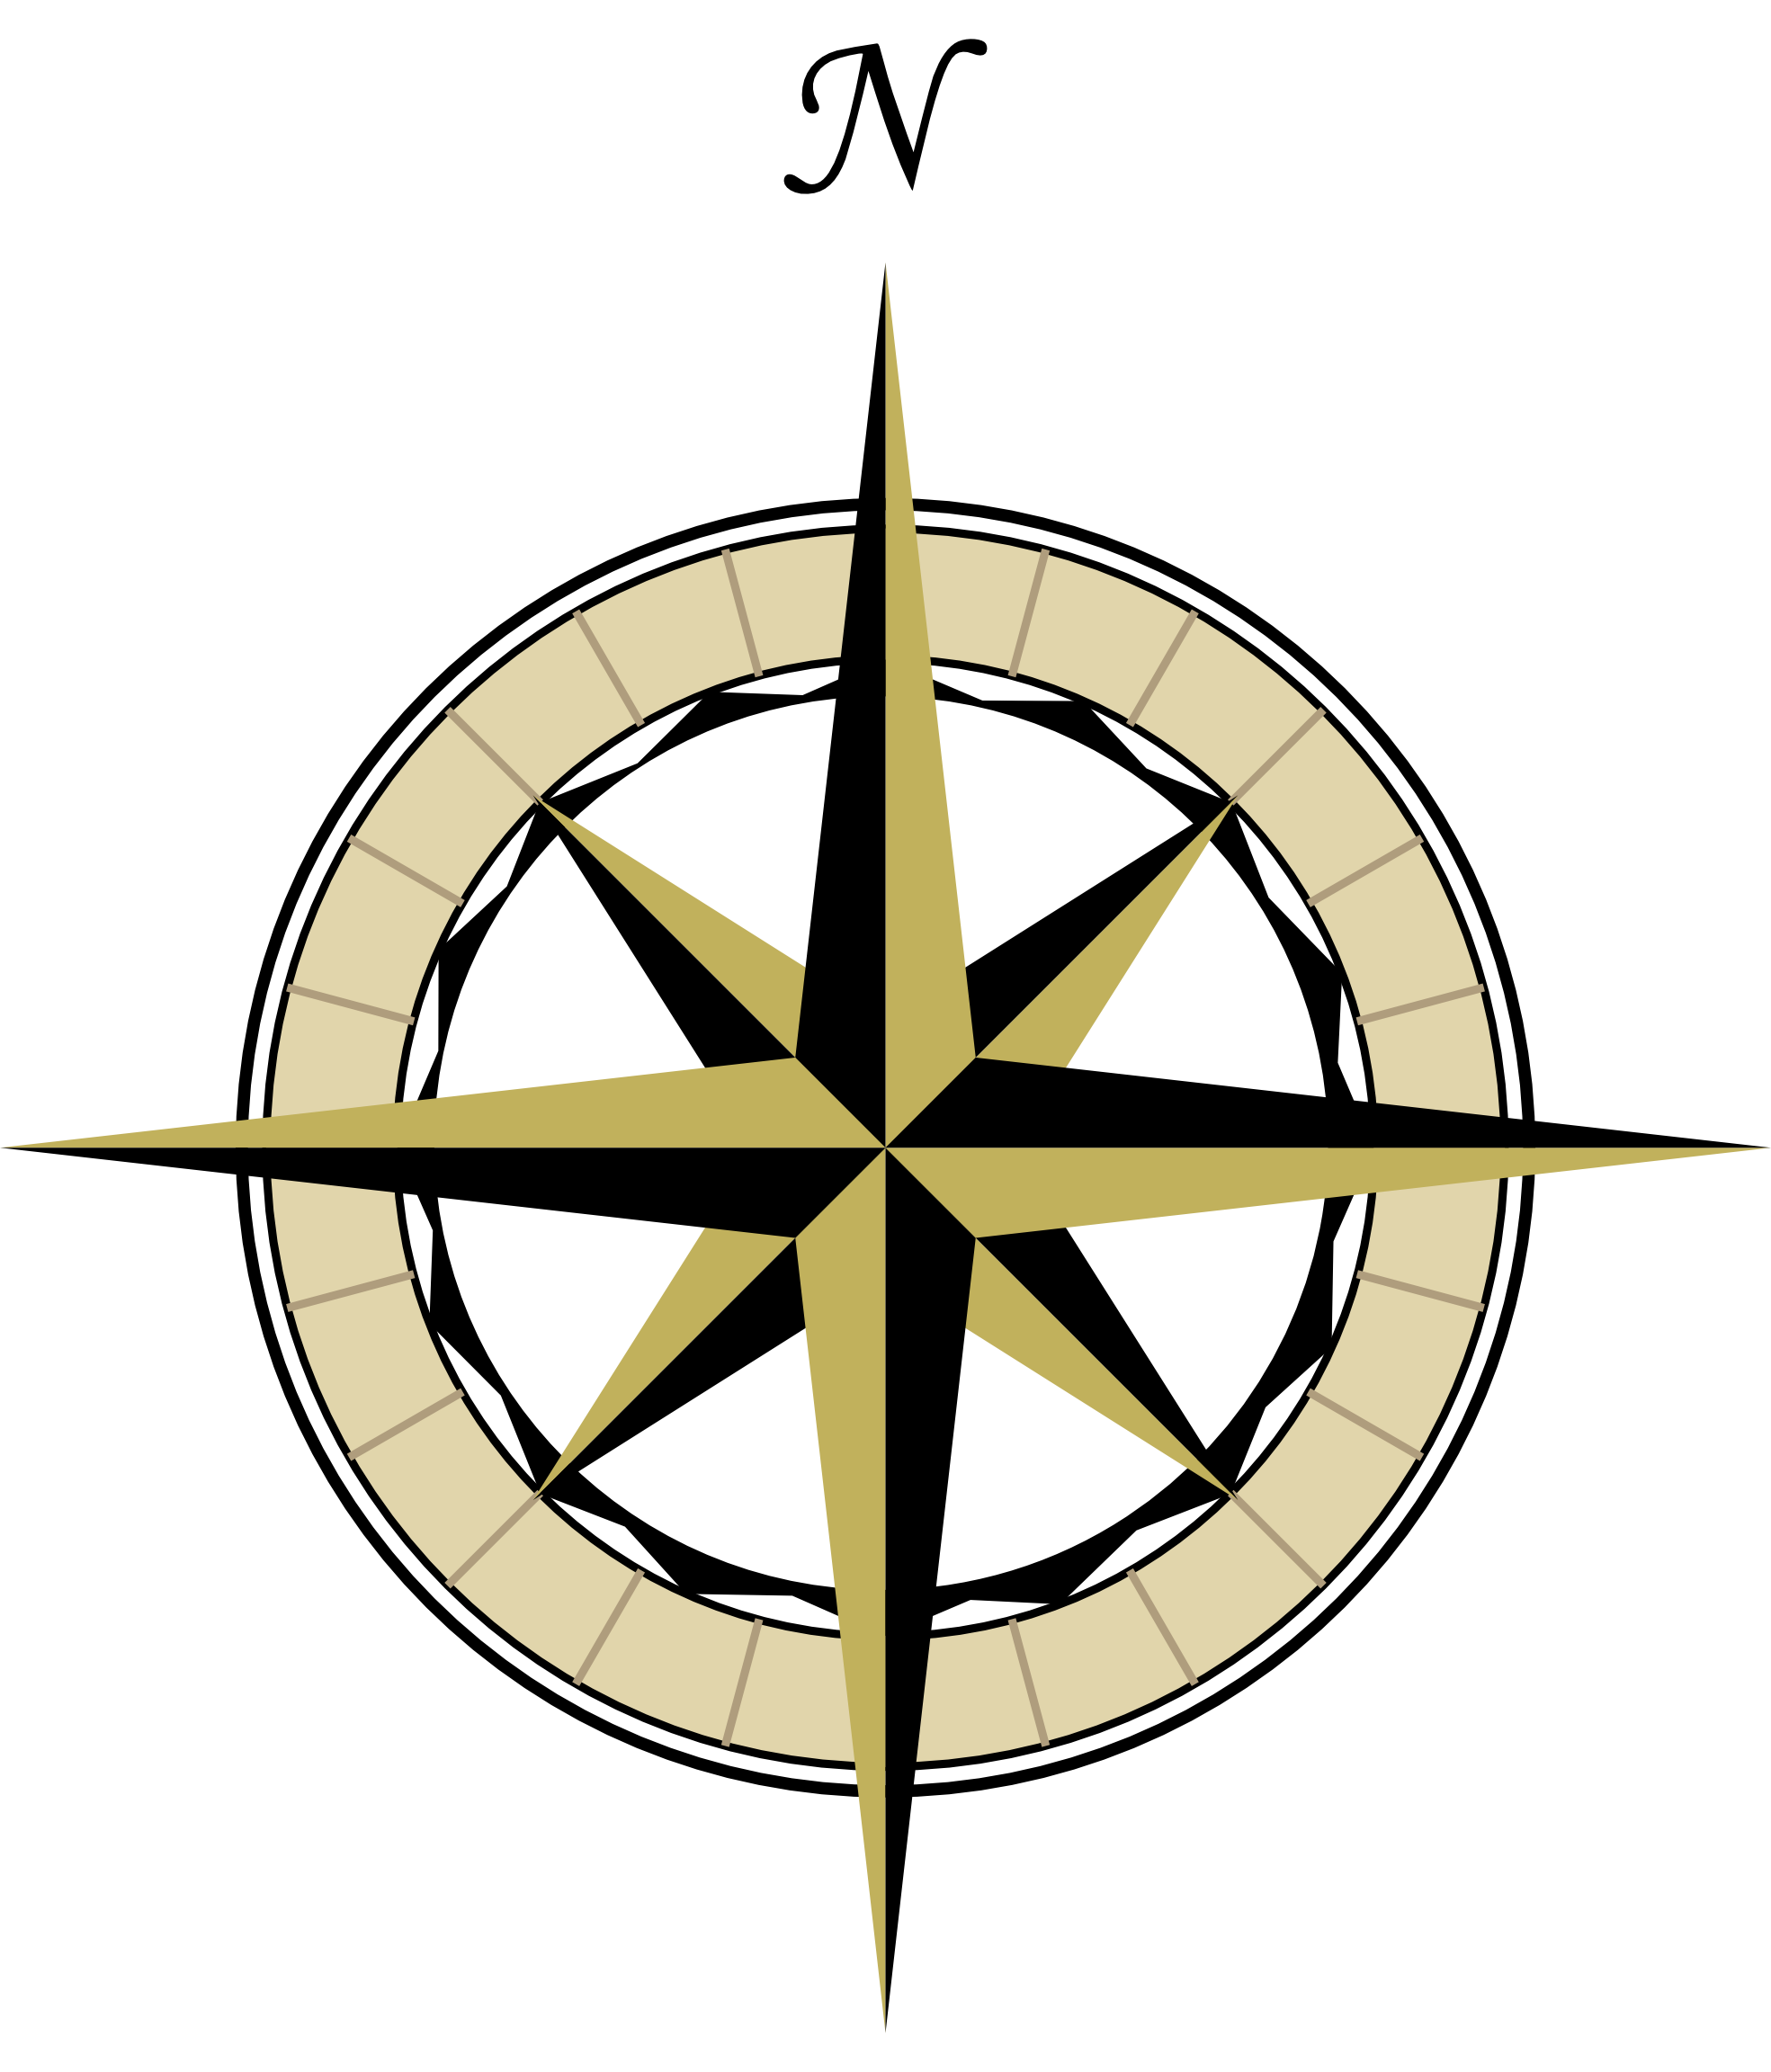 Point of the compass clipart #6